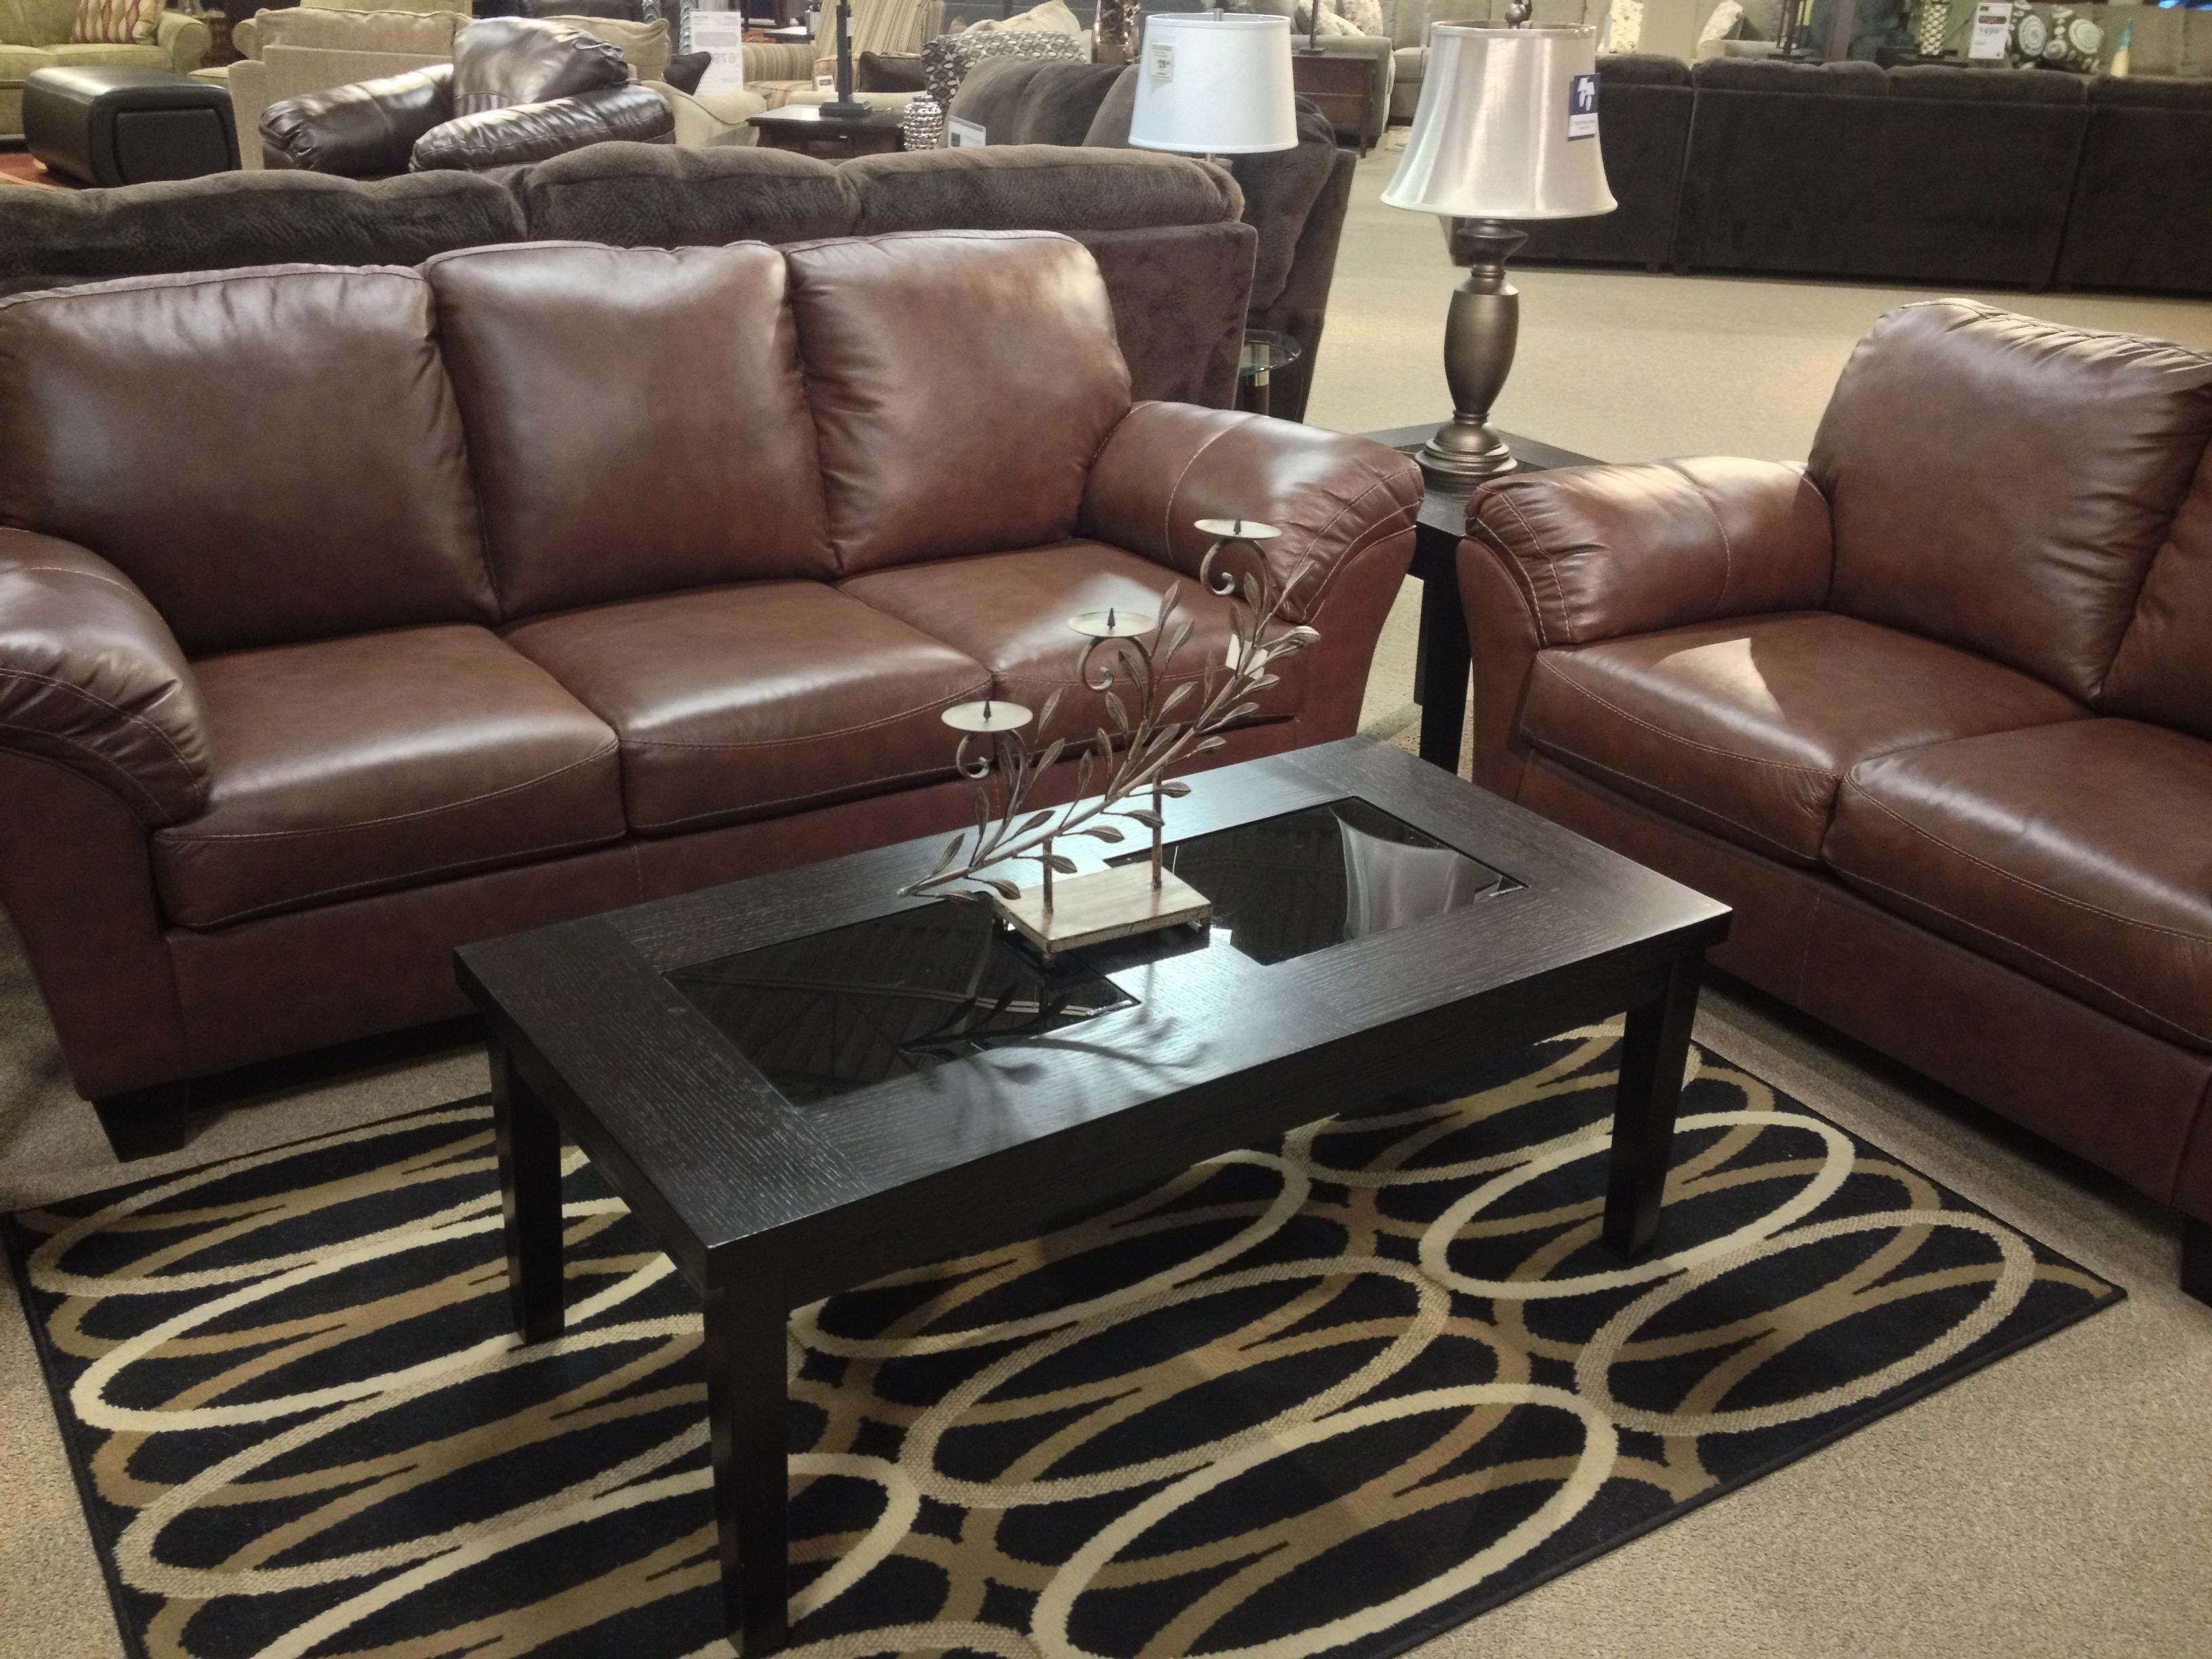 Rivergate Brown Sofa Loveseat Coffee Table and 2 End Tables at